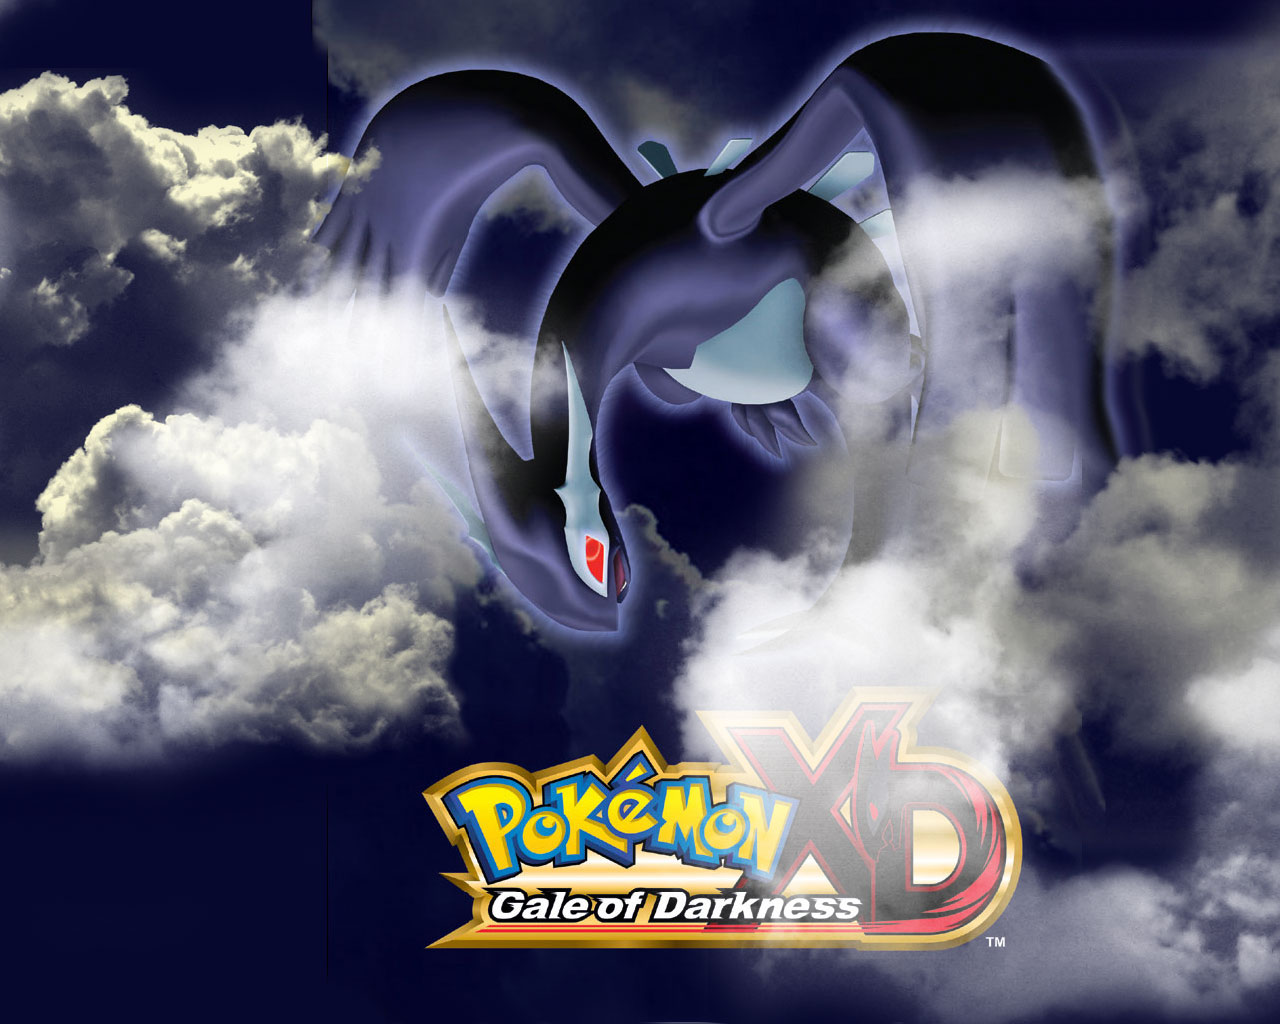 http://www.emuparadise.me/fup/up/66289-Pokemon_XD_Gale_of_Darkness-1.jpg